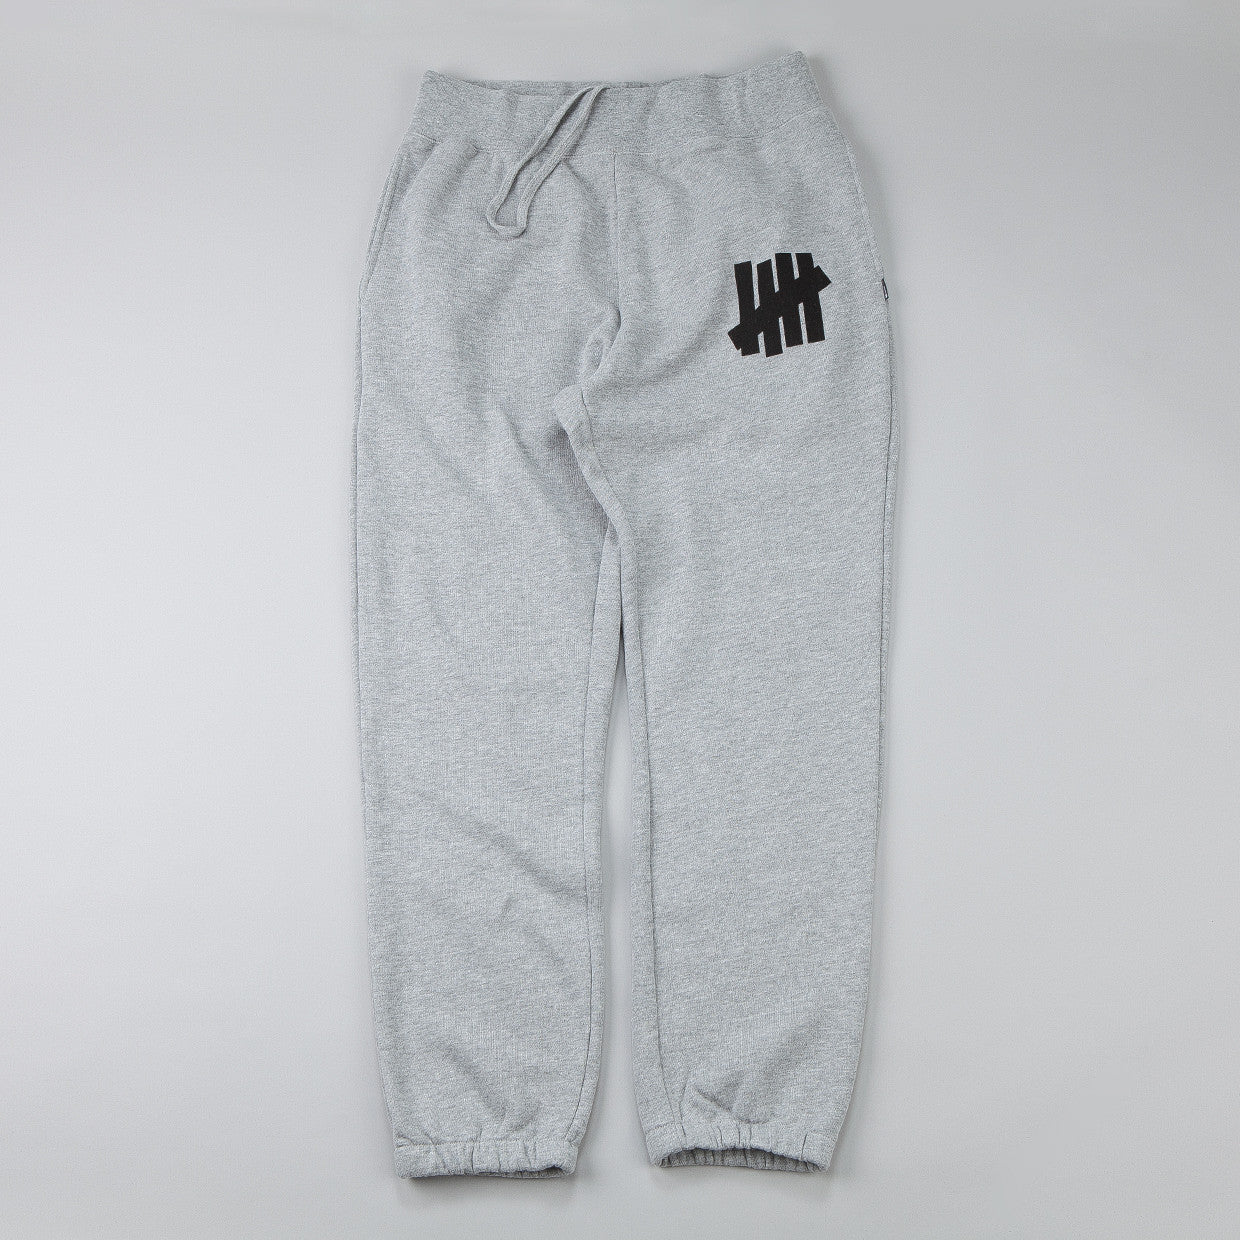 Undefeated 5 Strike Basic Sweatpants Grey Heather